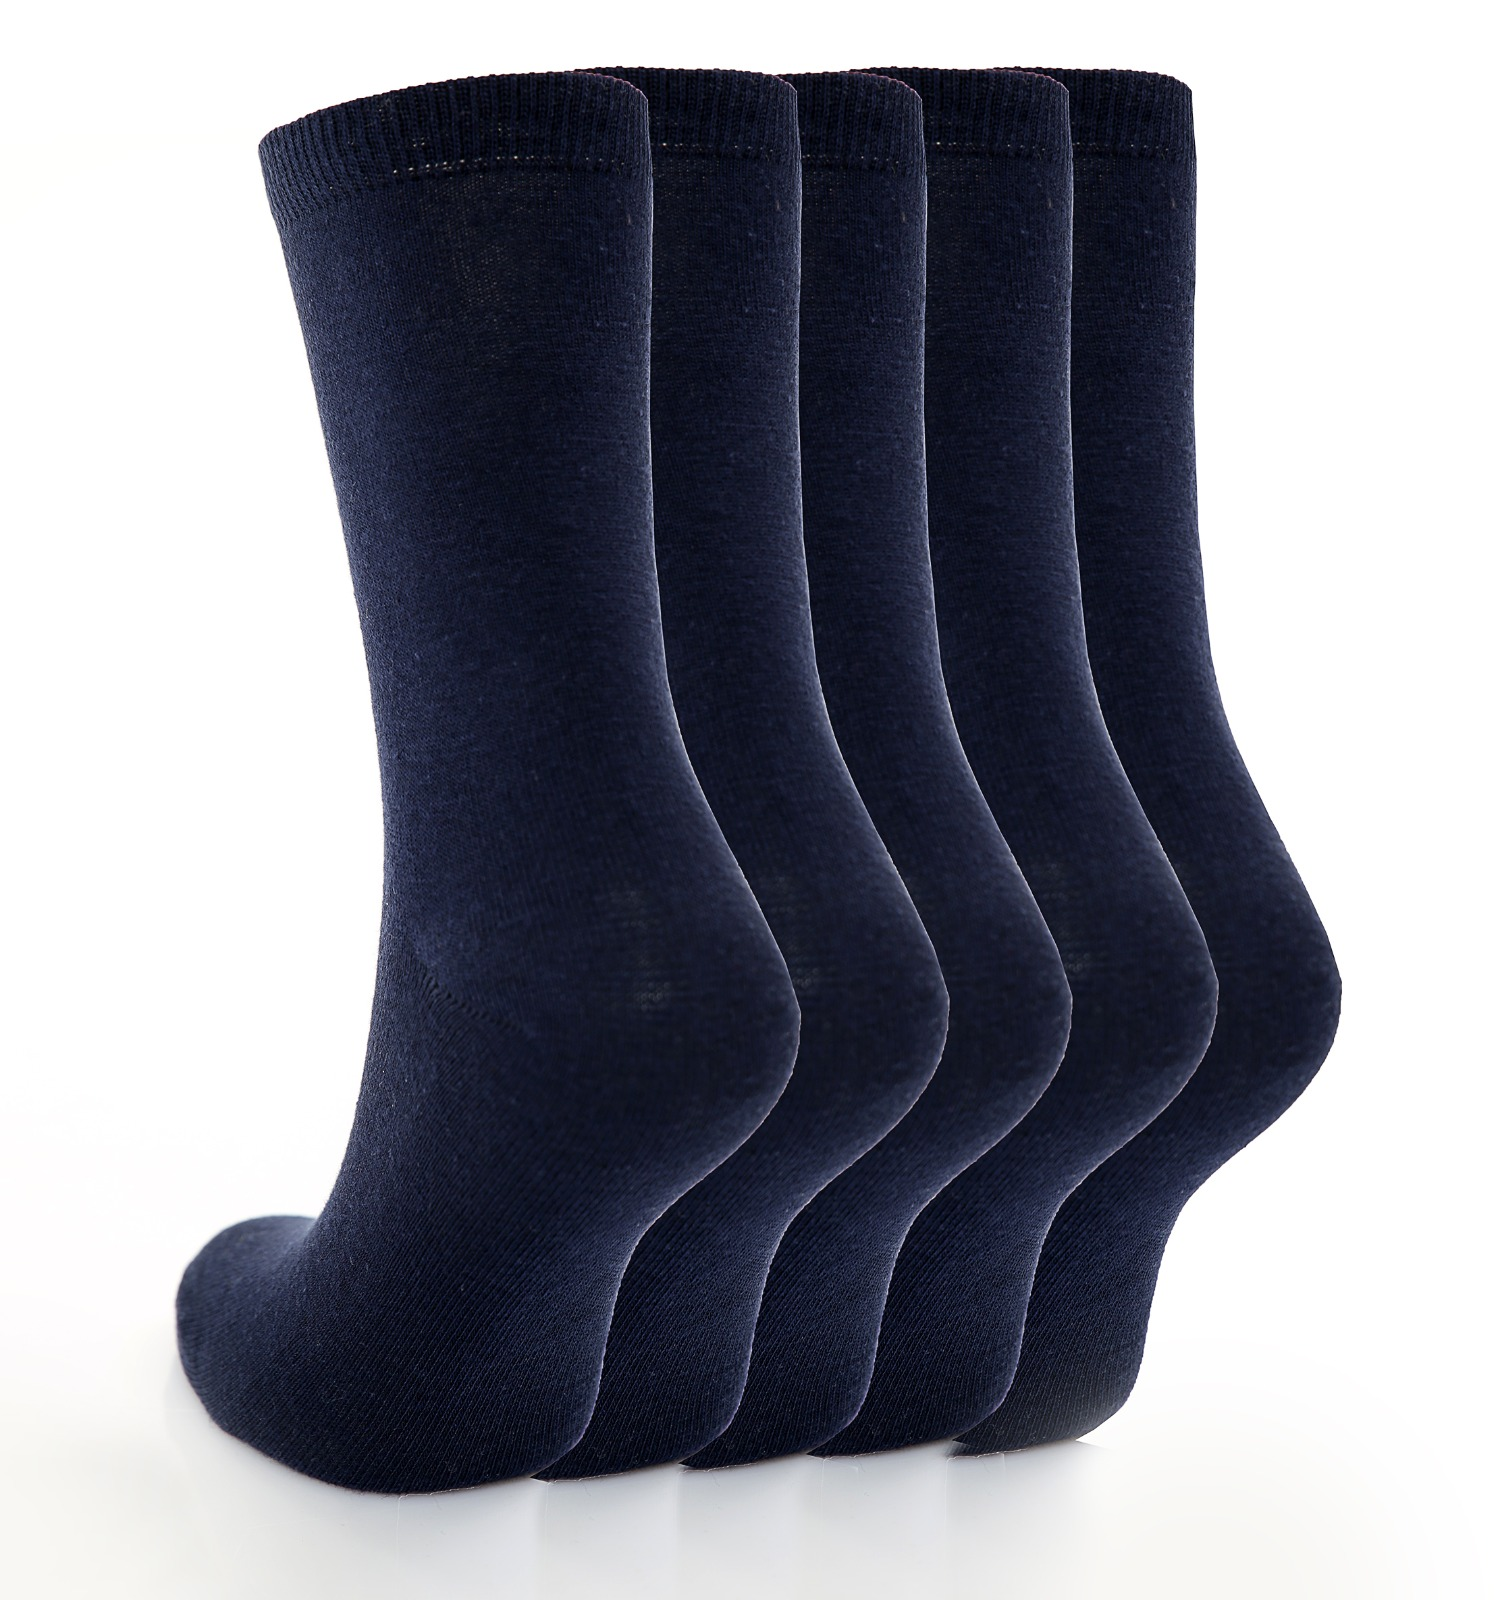 Children's 5pk Plain Navy Cotton Rich Socks